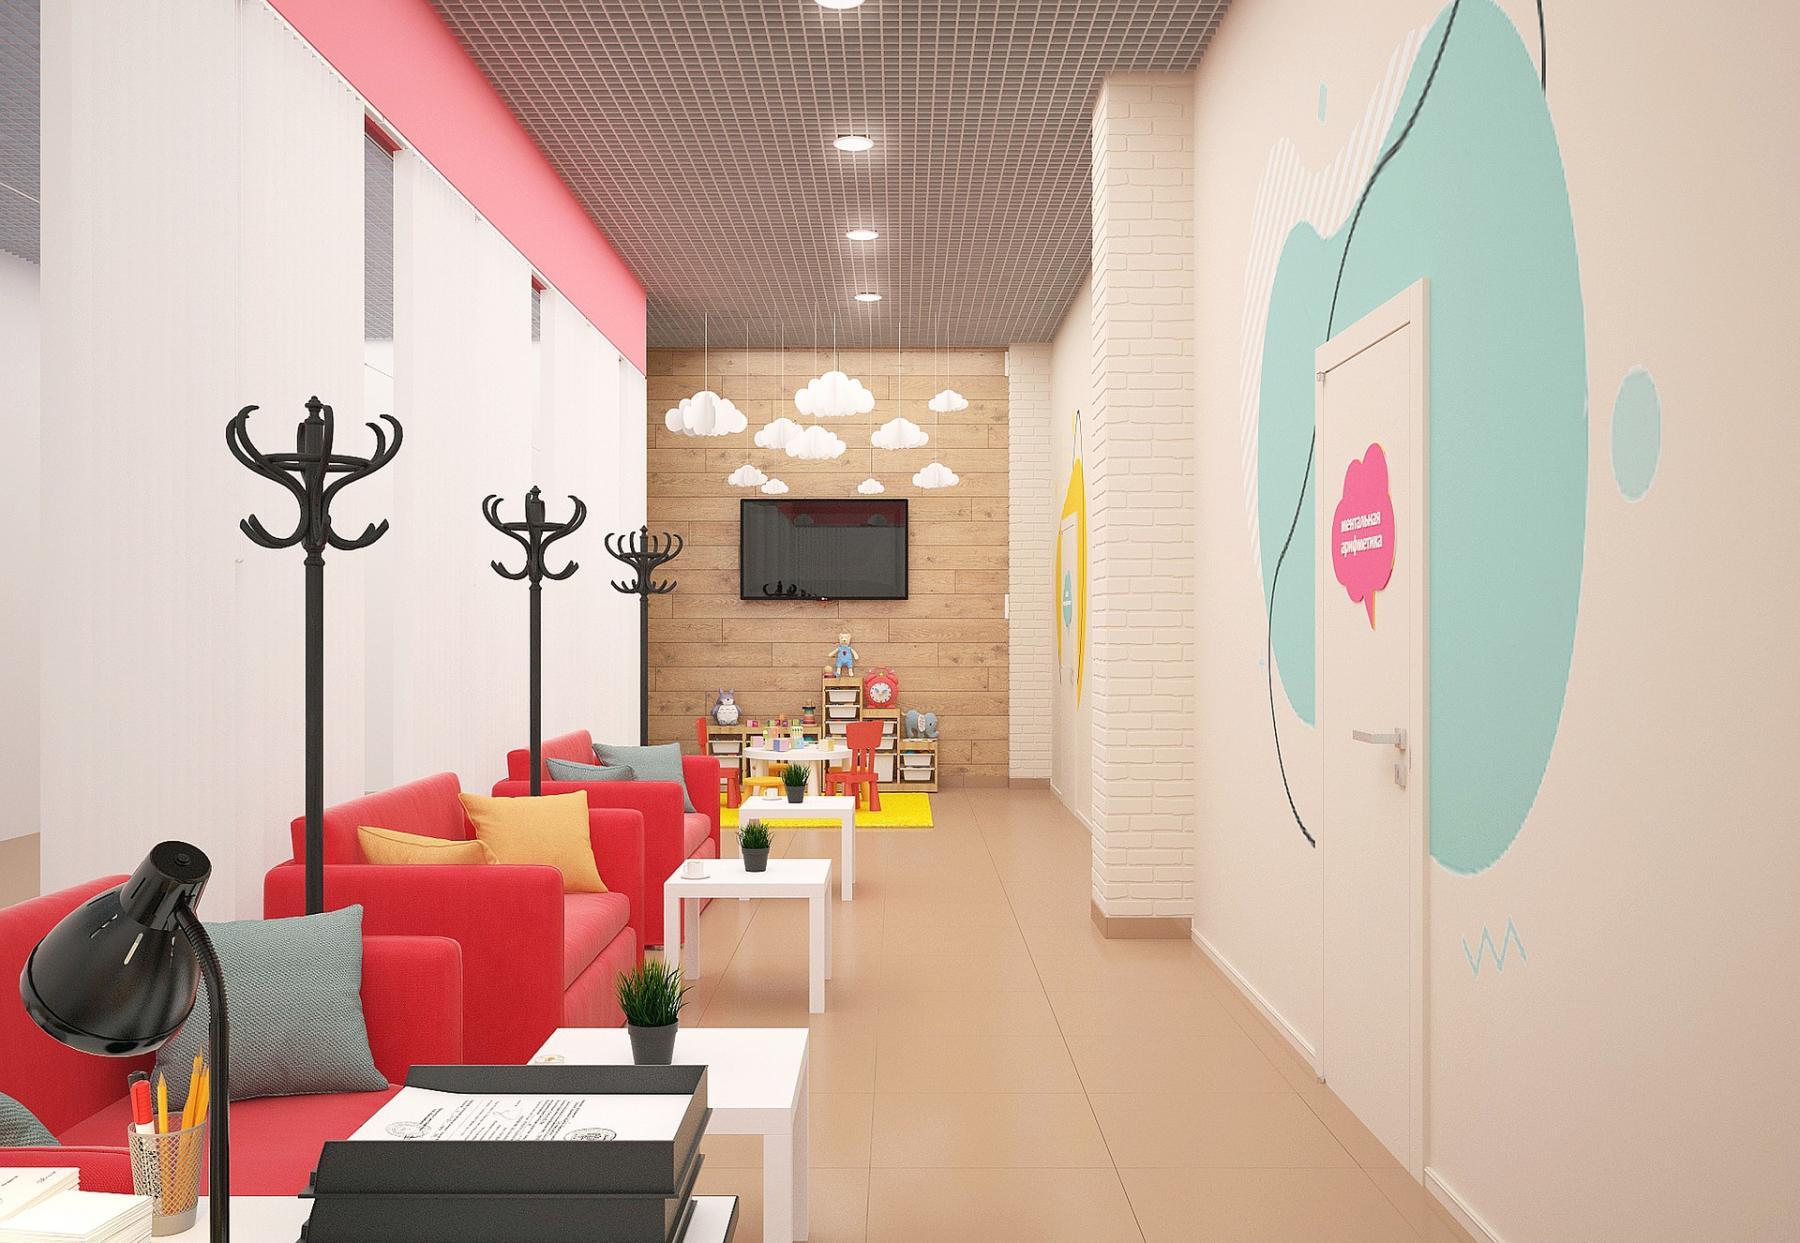 Case Study: Business case for a new children's hospital